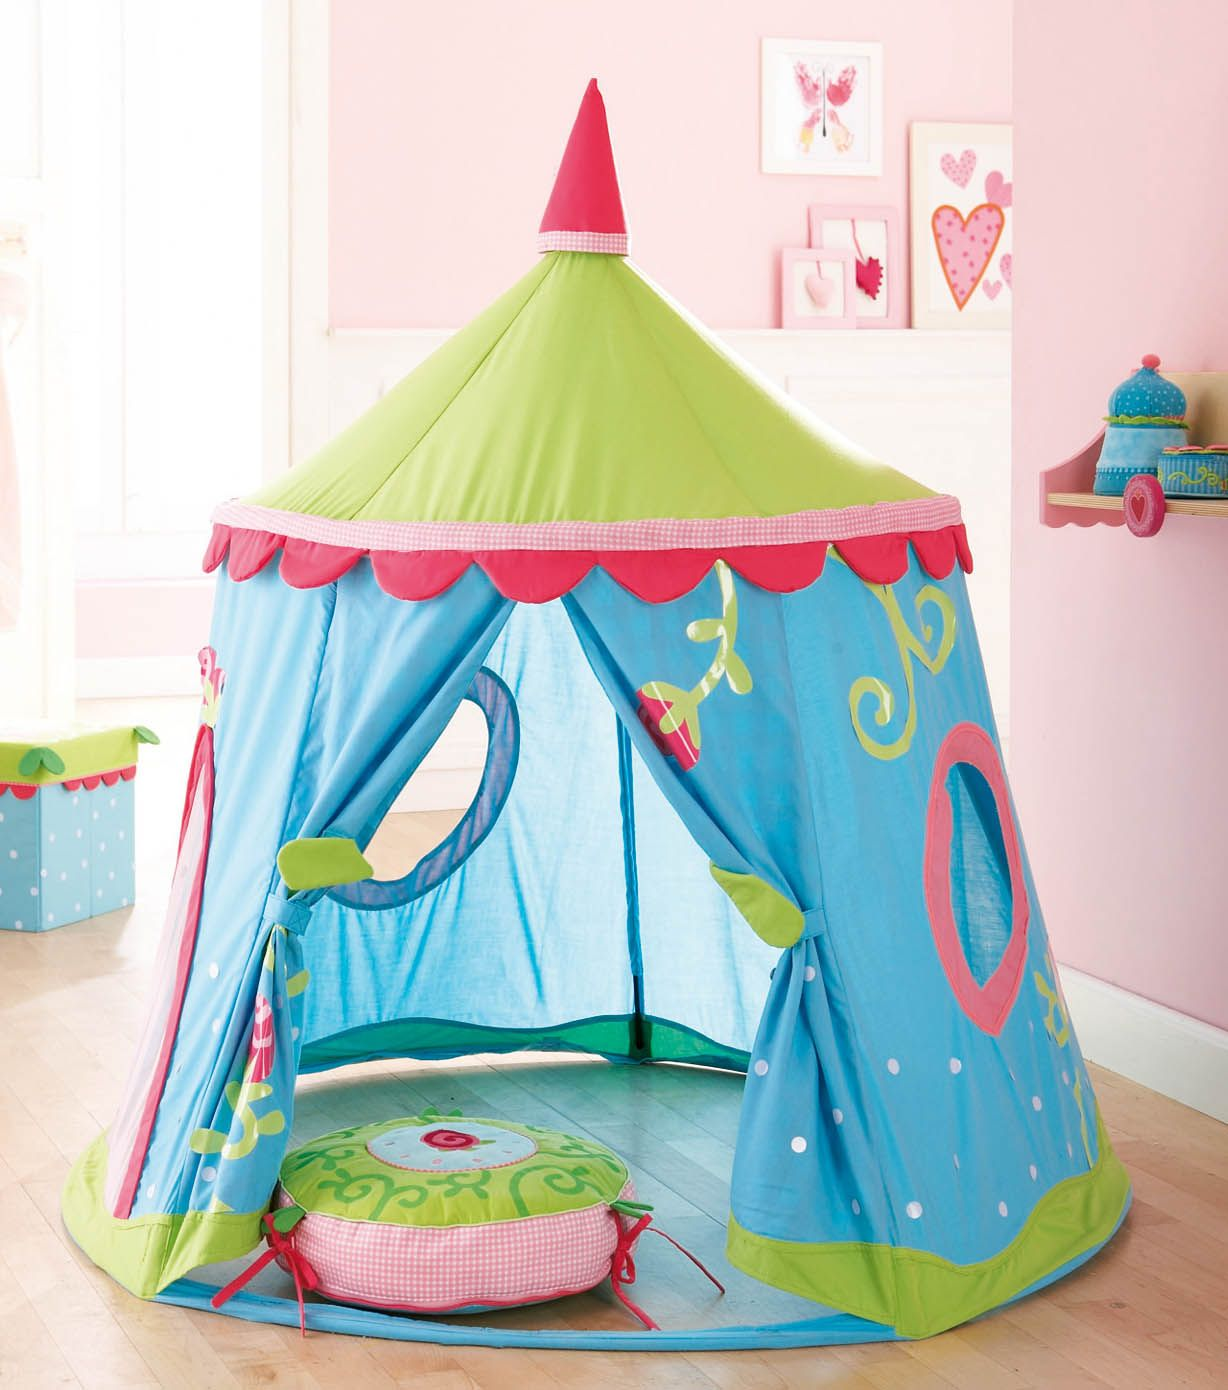 Kid Bedroom  Amusing Kid Bedroom Decoration With Blue Green Round Kid Tent Bed Along With Light Pink Bedroom Wall Paint And Oak Wood Bedroom Flooring  sc 1 st  Pinterest & Haba - Play Tent Caro-Lini by Haba | DIY/ craft ideas | Pinterest ...